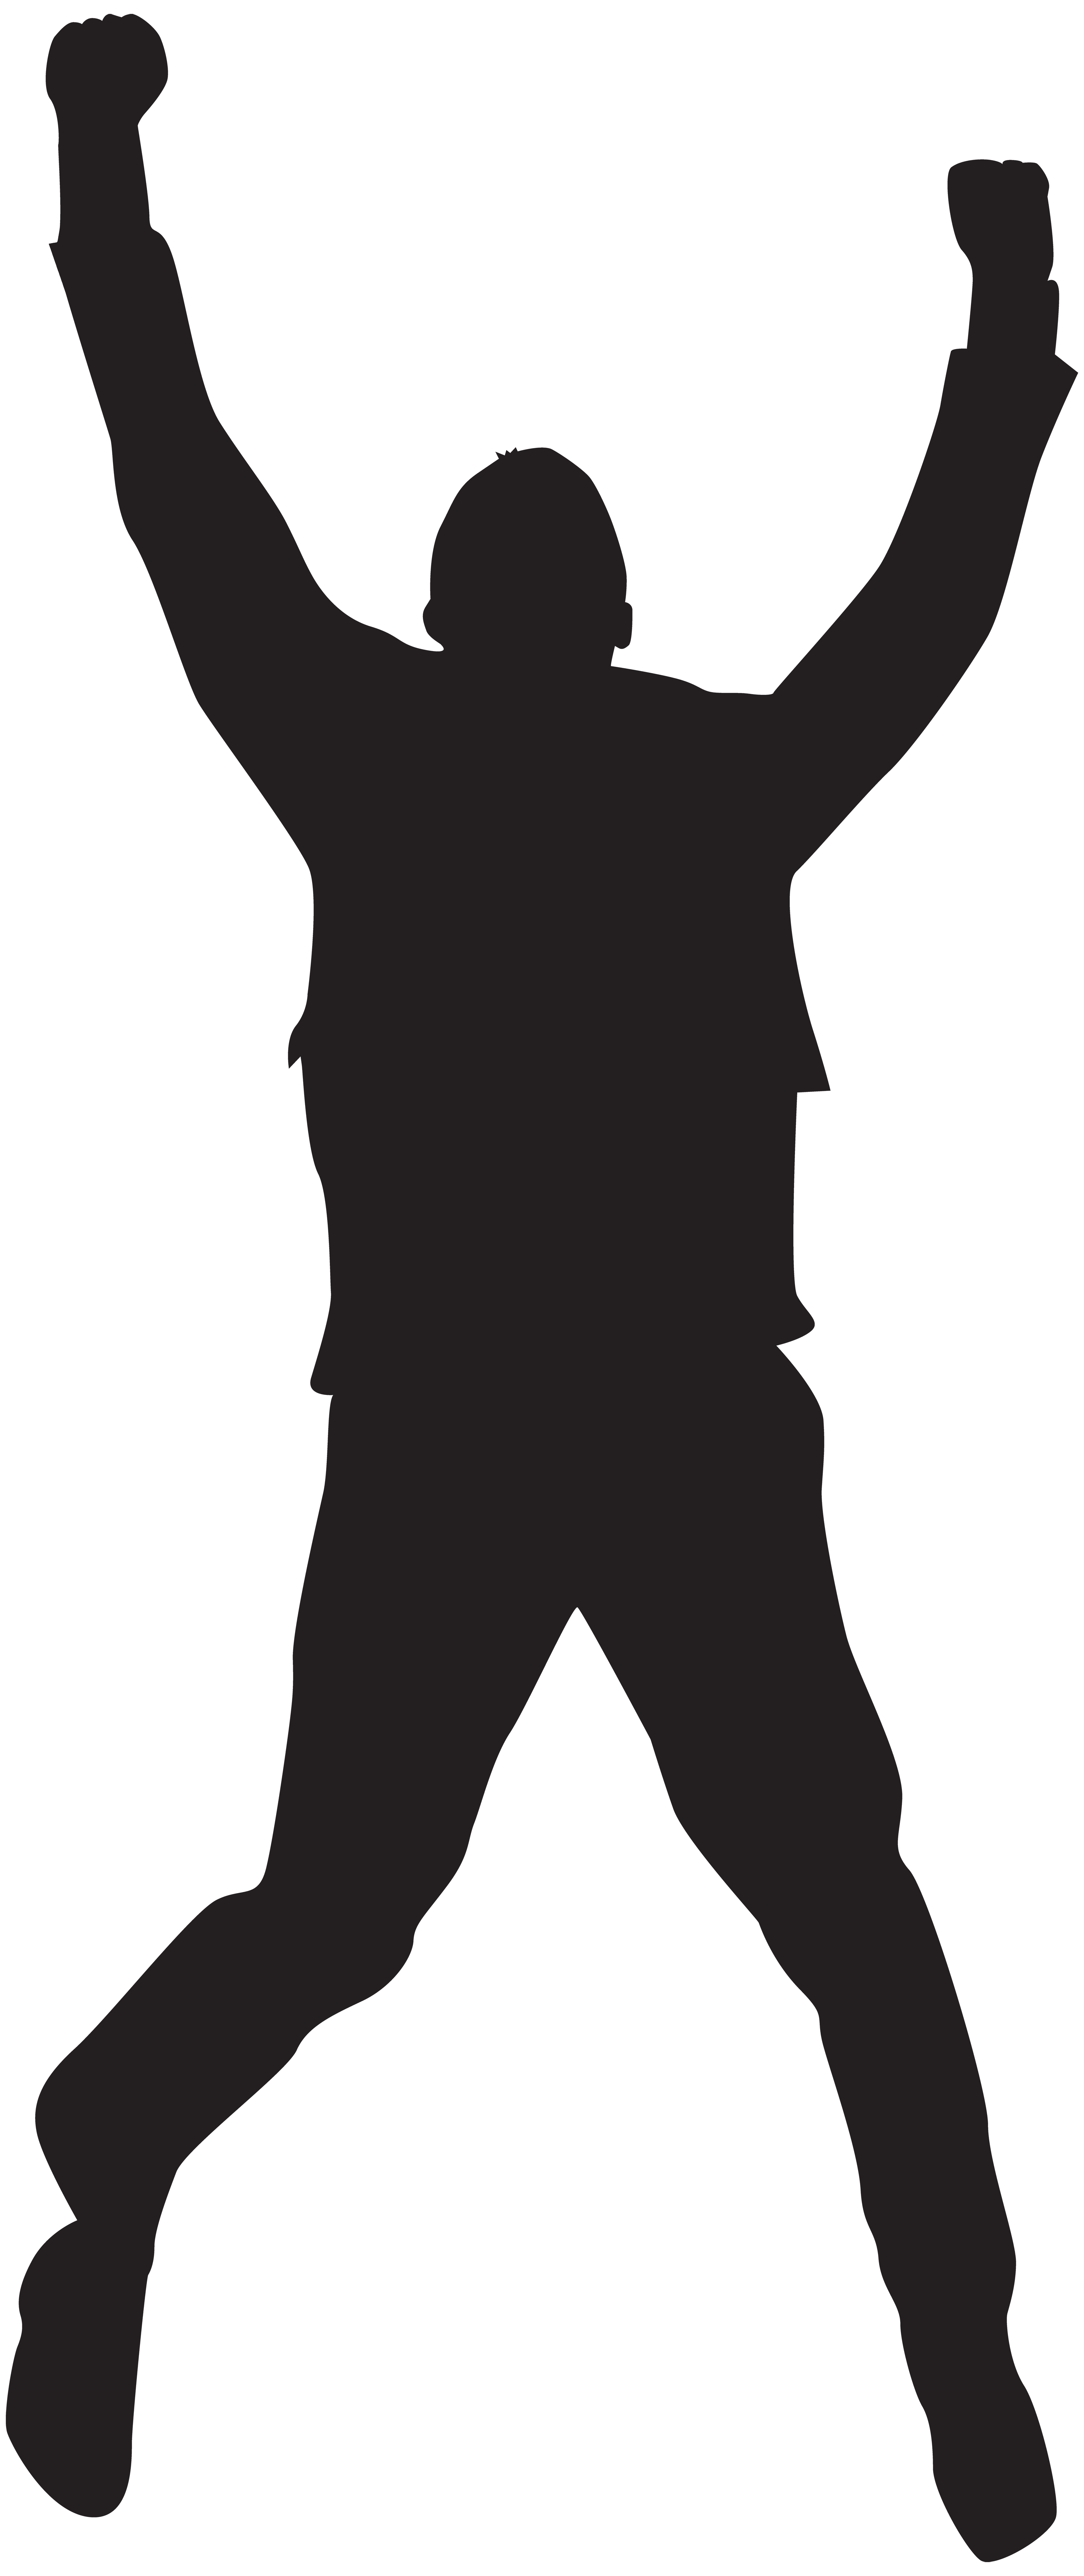 Silhouette clip art happy. Jumping clipart standing long jump